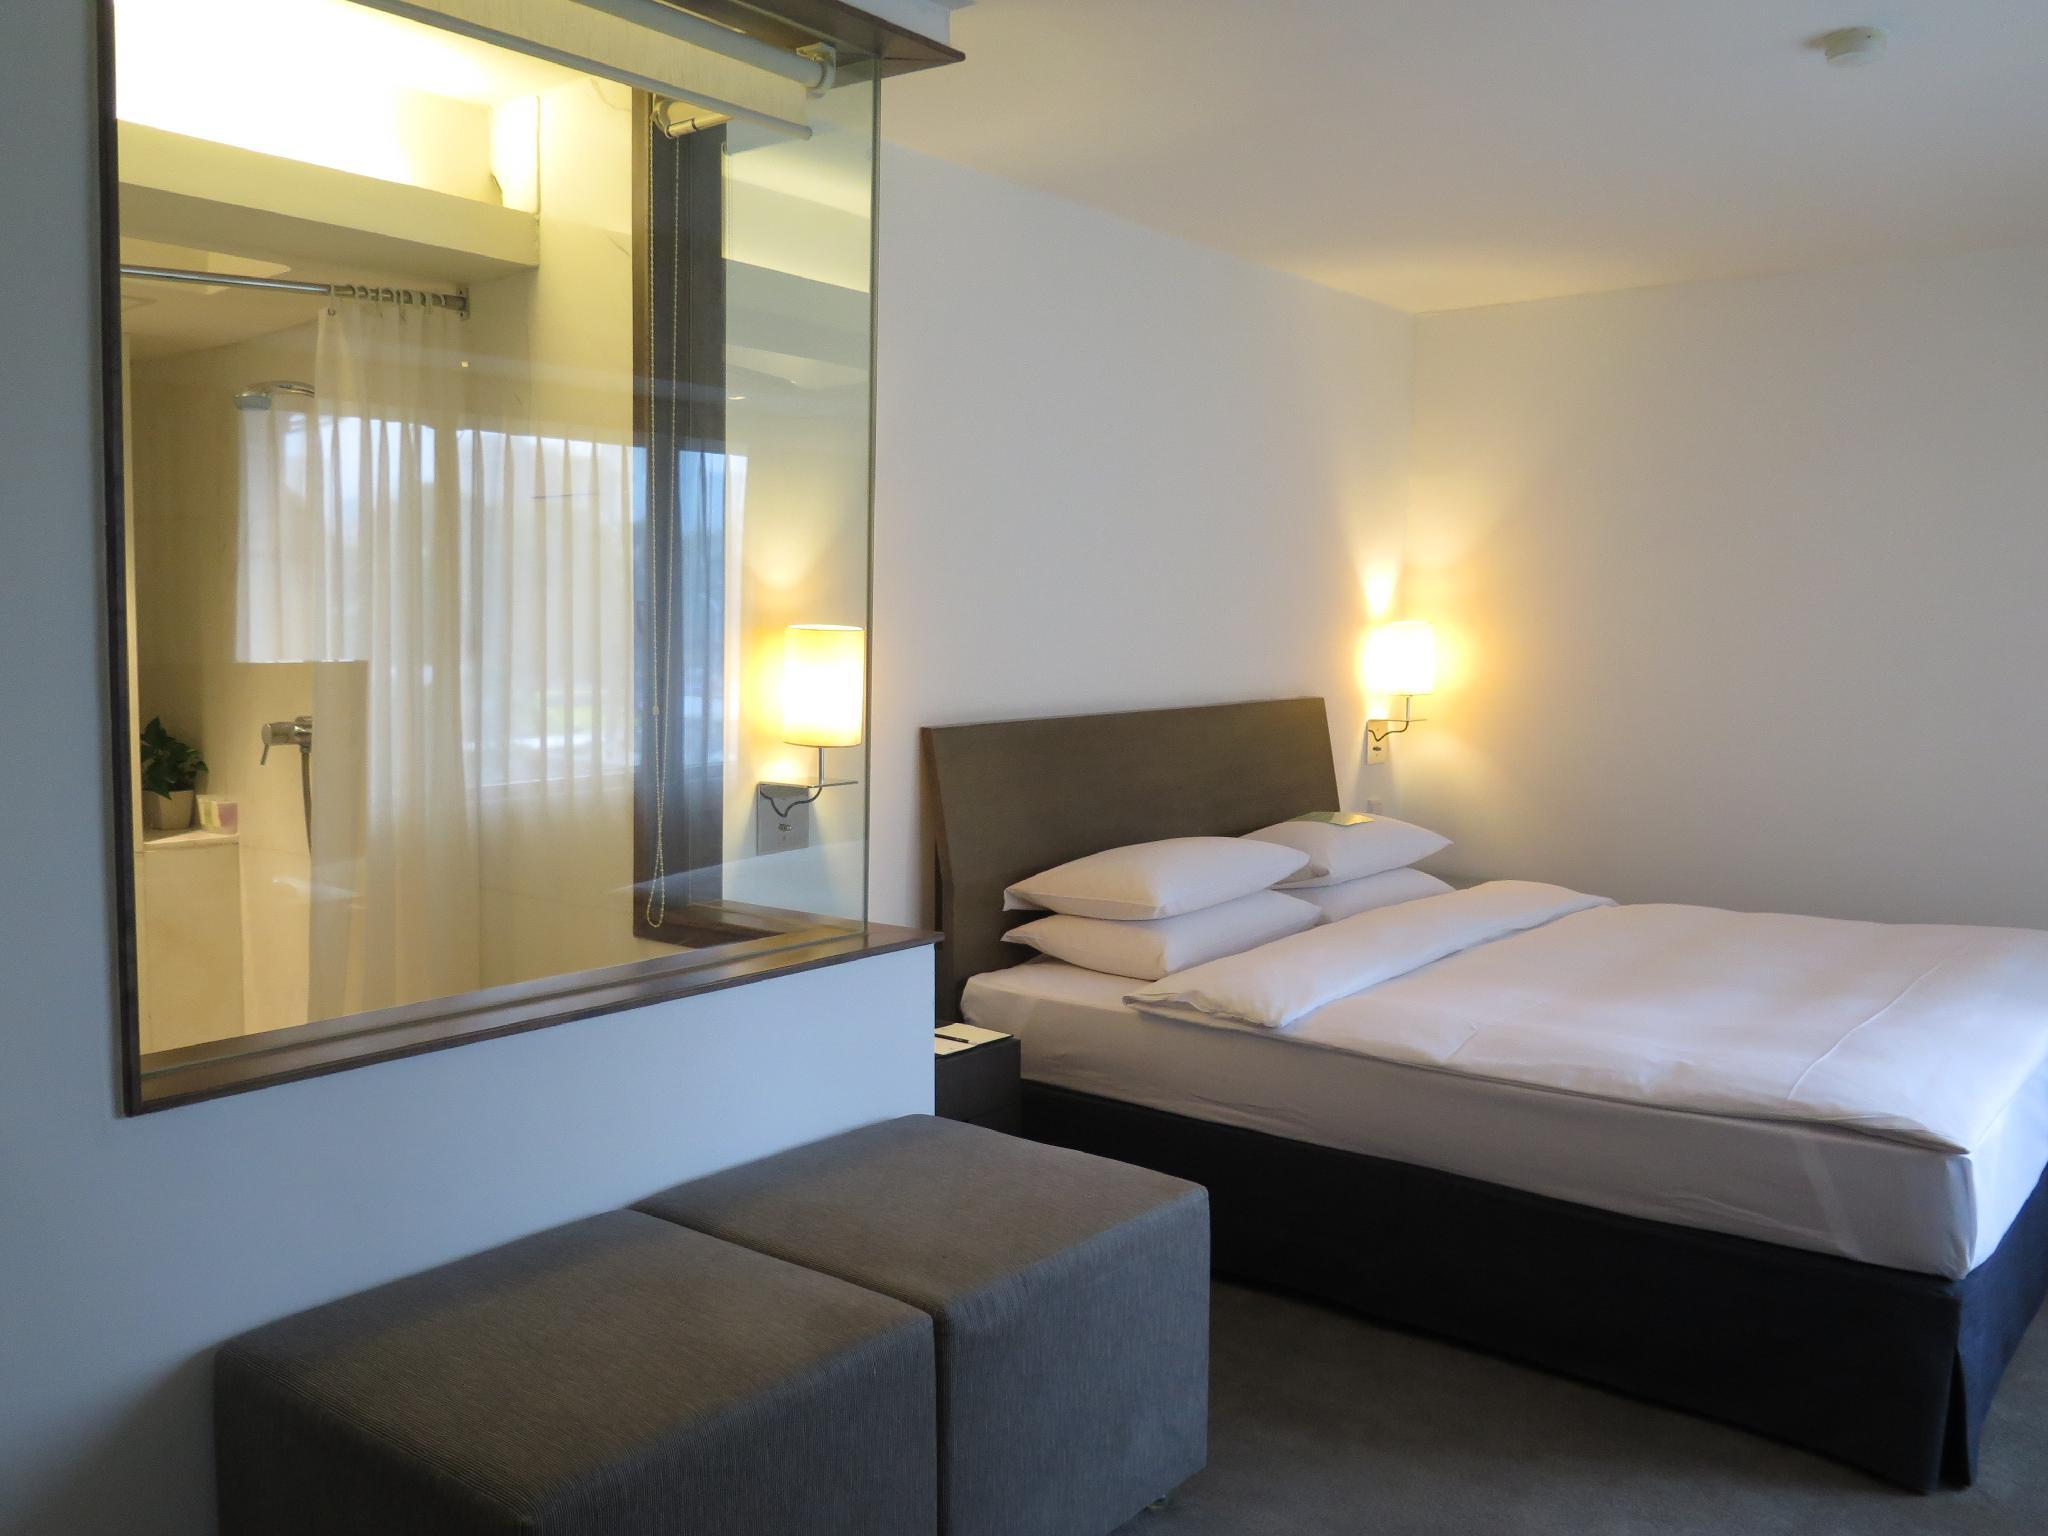 Bilik Eksekutif Double (Executive Double Room)